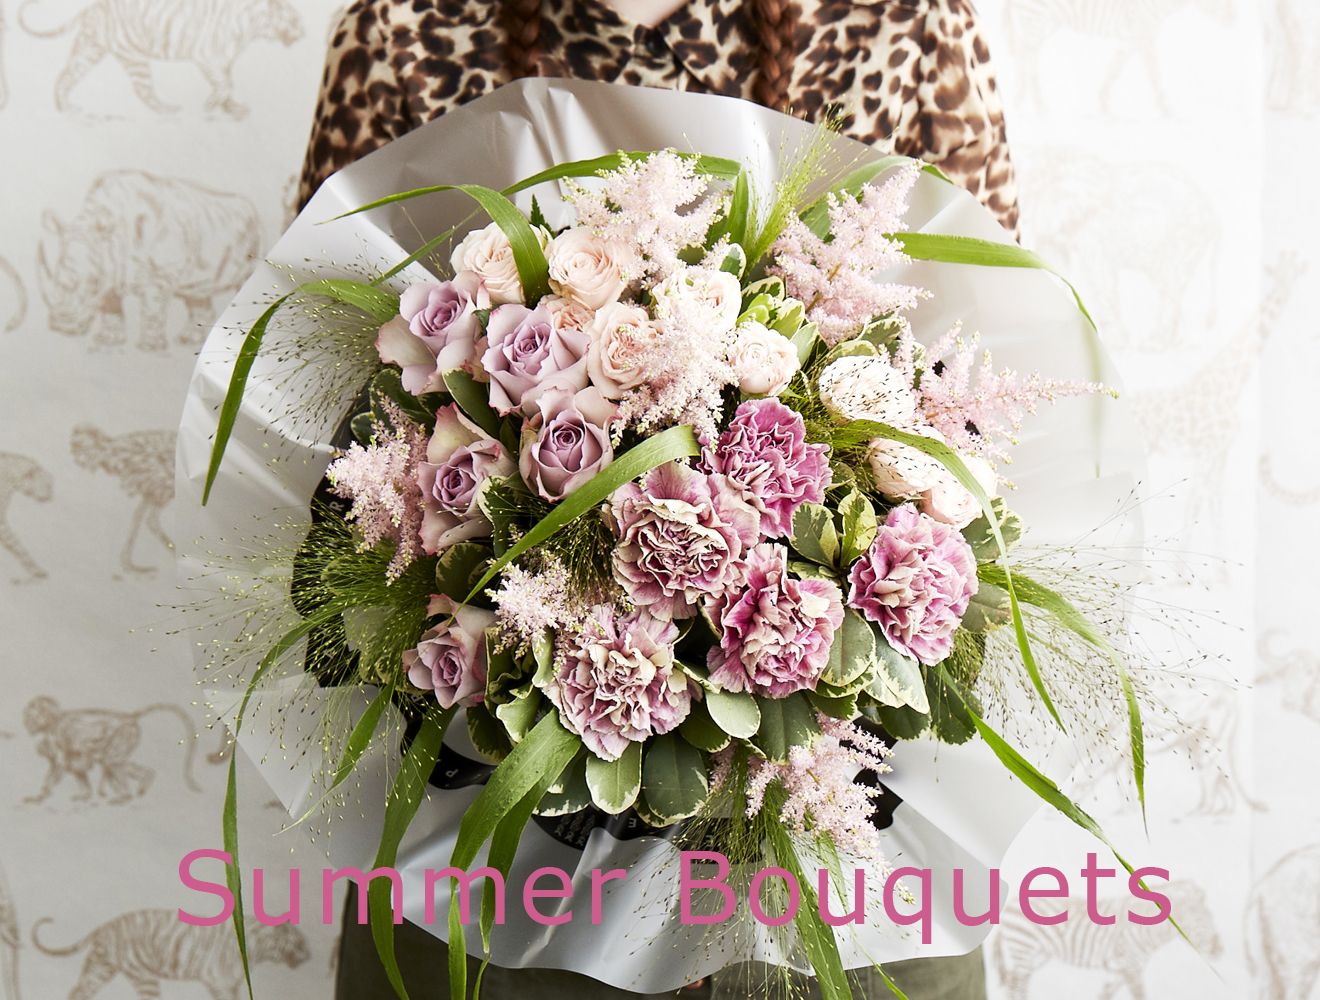 Summer Bouquets